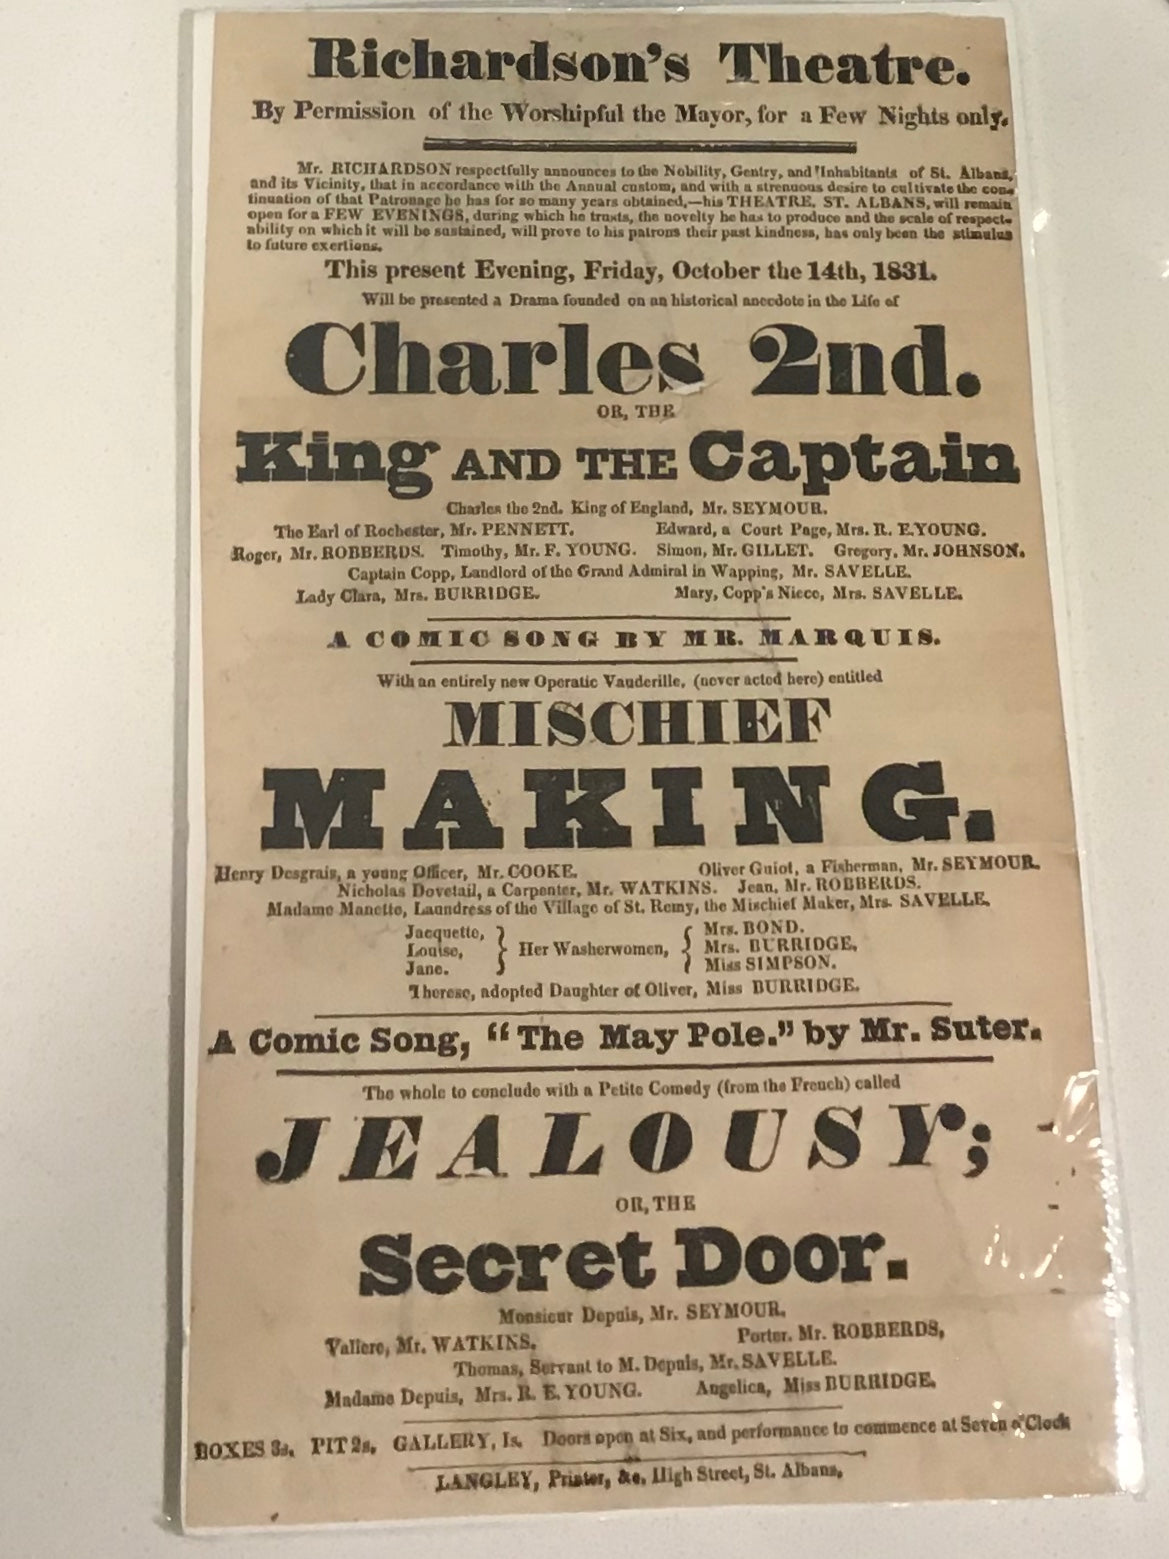 Playbill : Friday October 14th, 1831 - Charles the 2nd or, the King and Cleopatra; Mischief Making; Jealousy or, the Secret Door